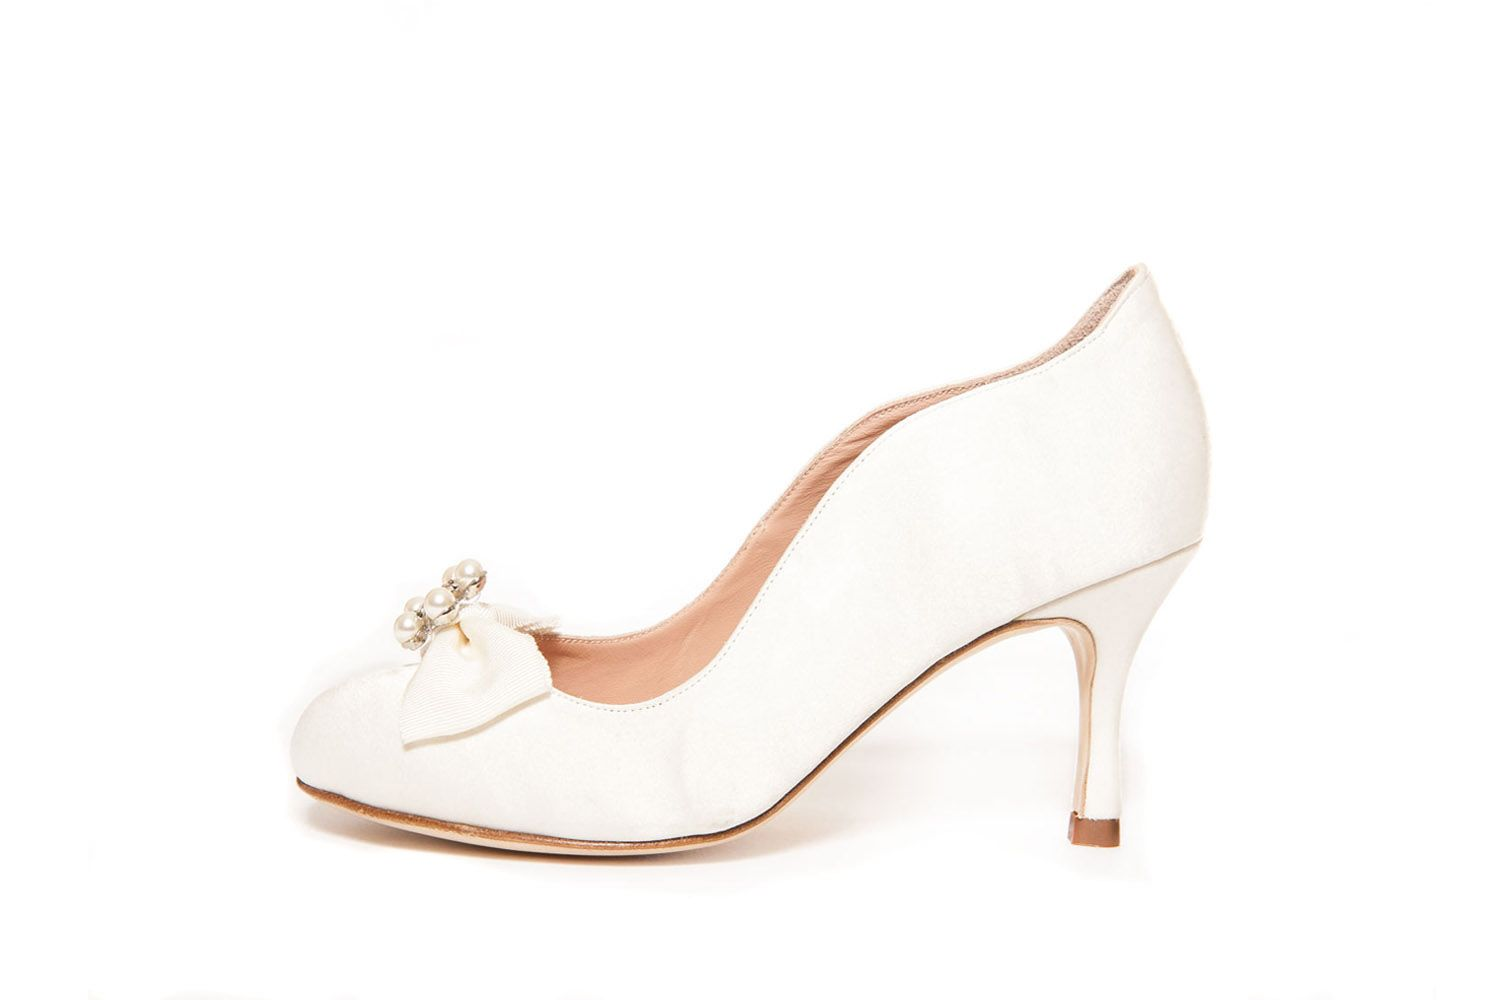 Luxury Wide Fit Wedding Shoe Made From Satin And Leather With Beautiful Customised Detailing